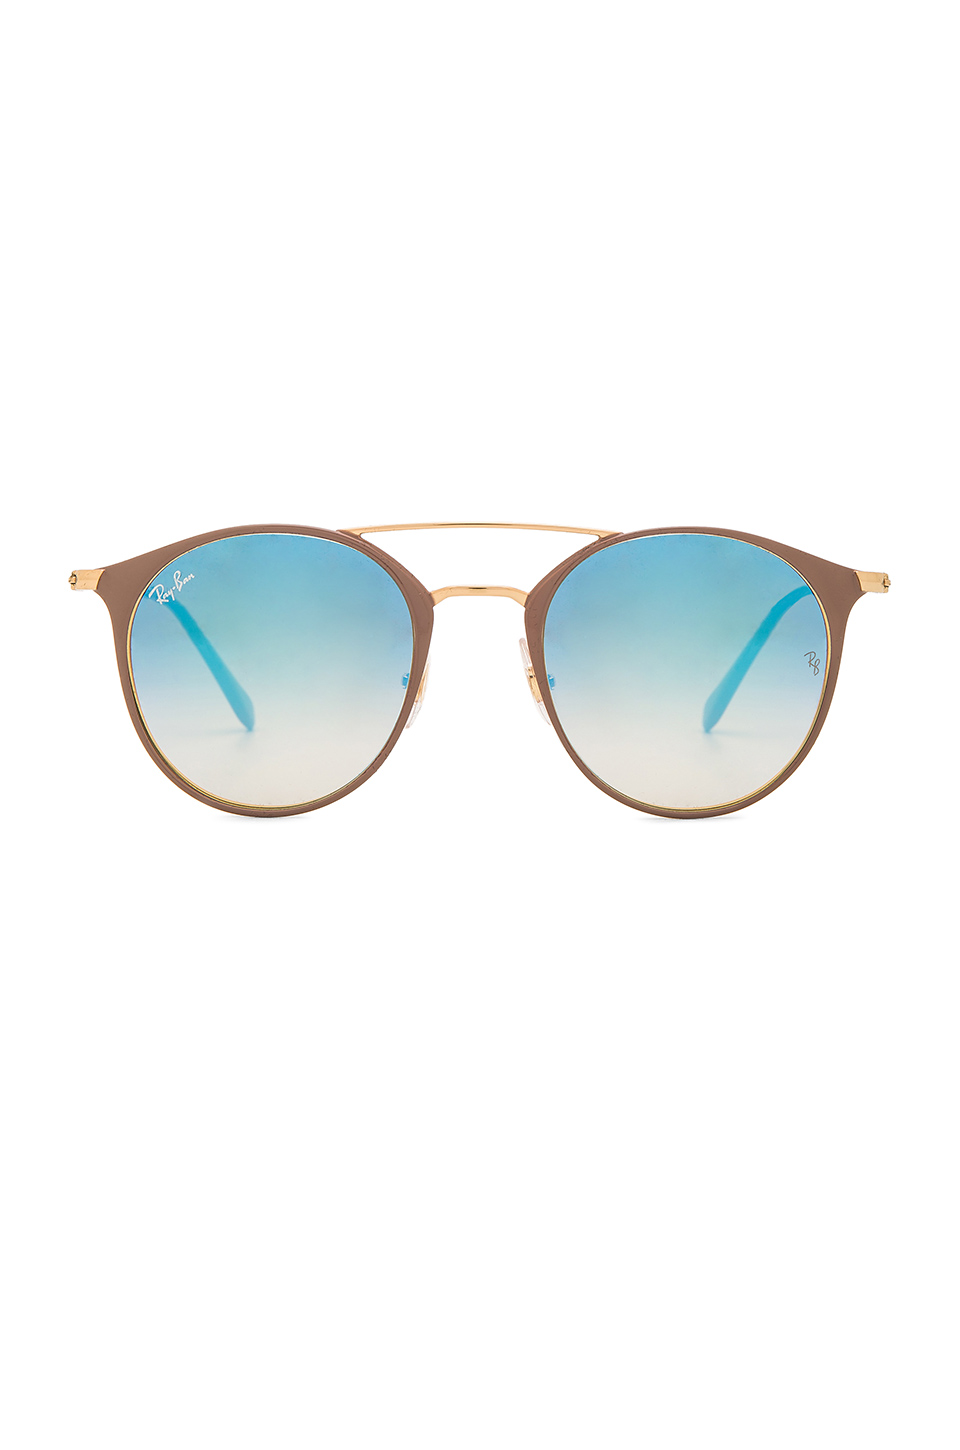 Ray-Ban Round in Gold Top Beige